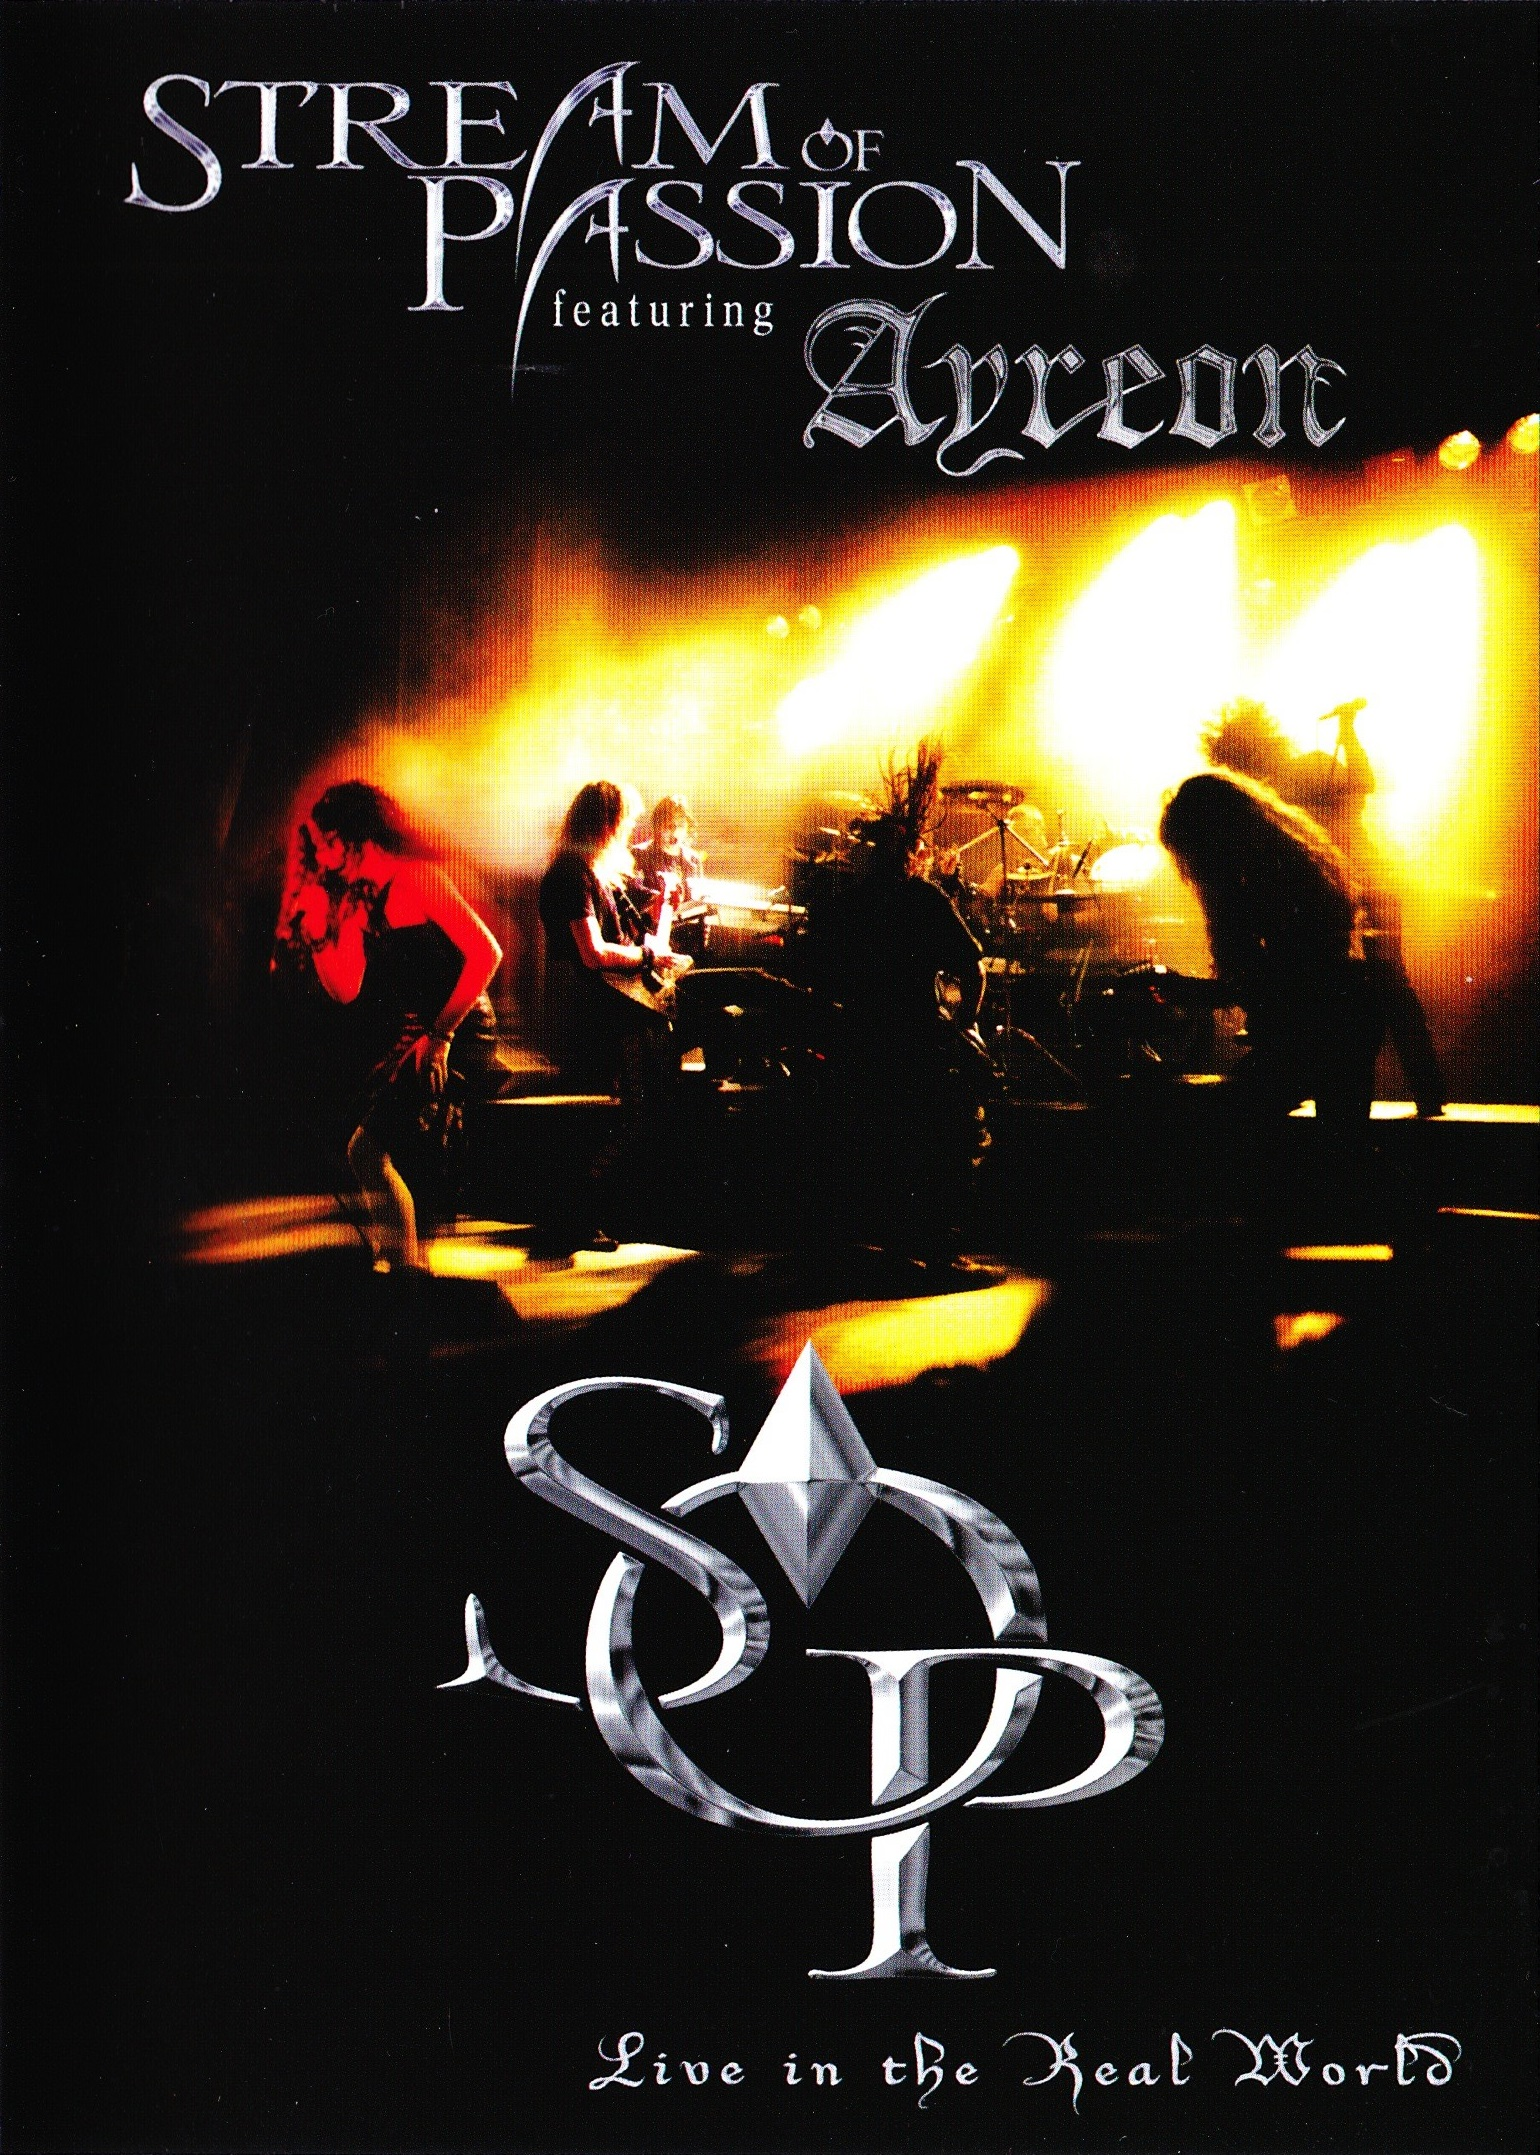 Stream of Passion feat. Ayreon — Live in the Real World DVD (2006)